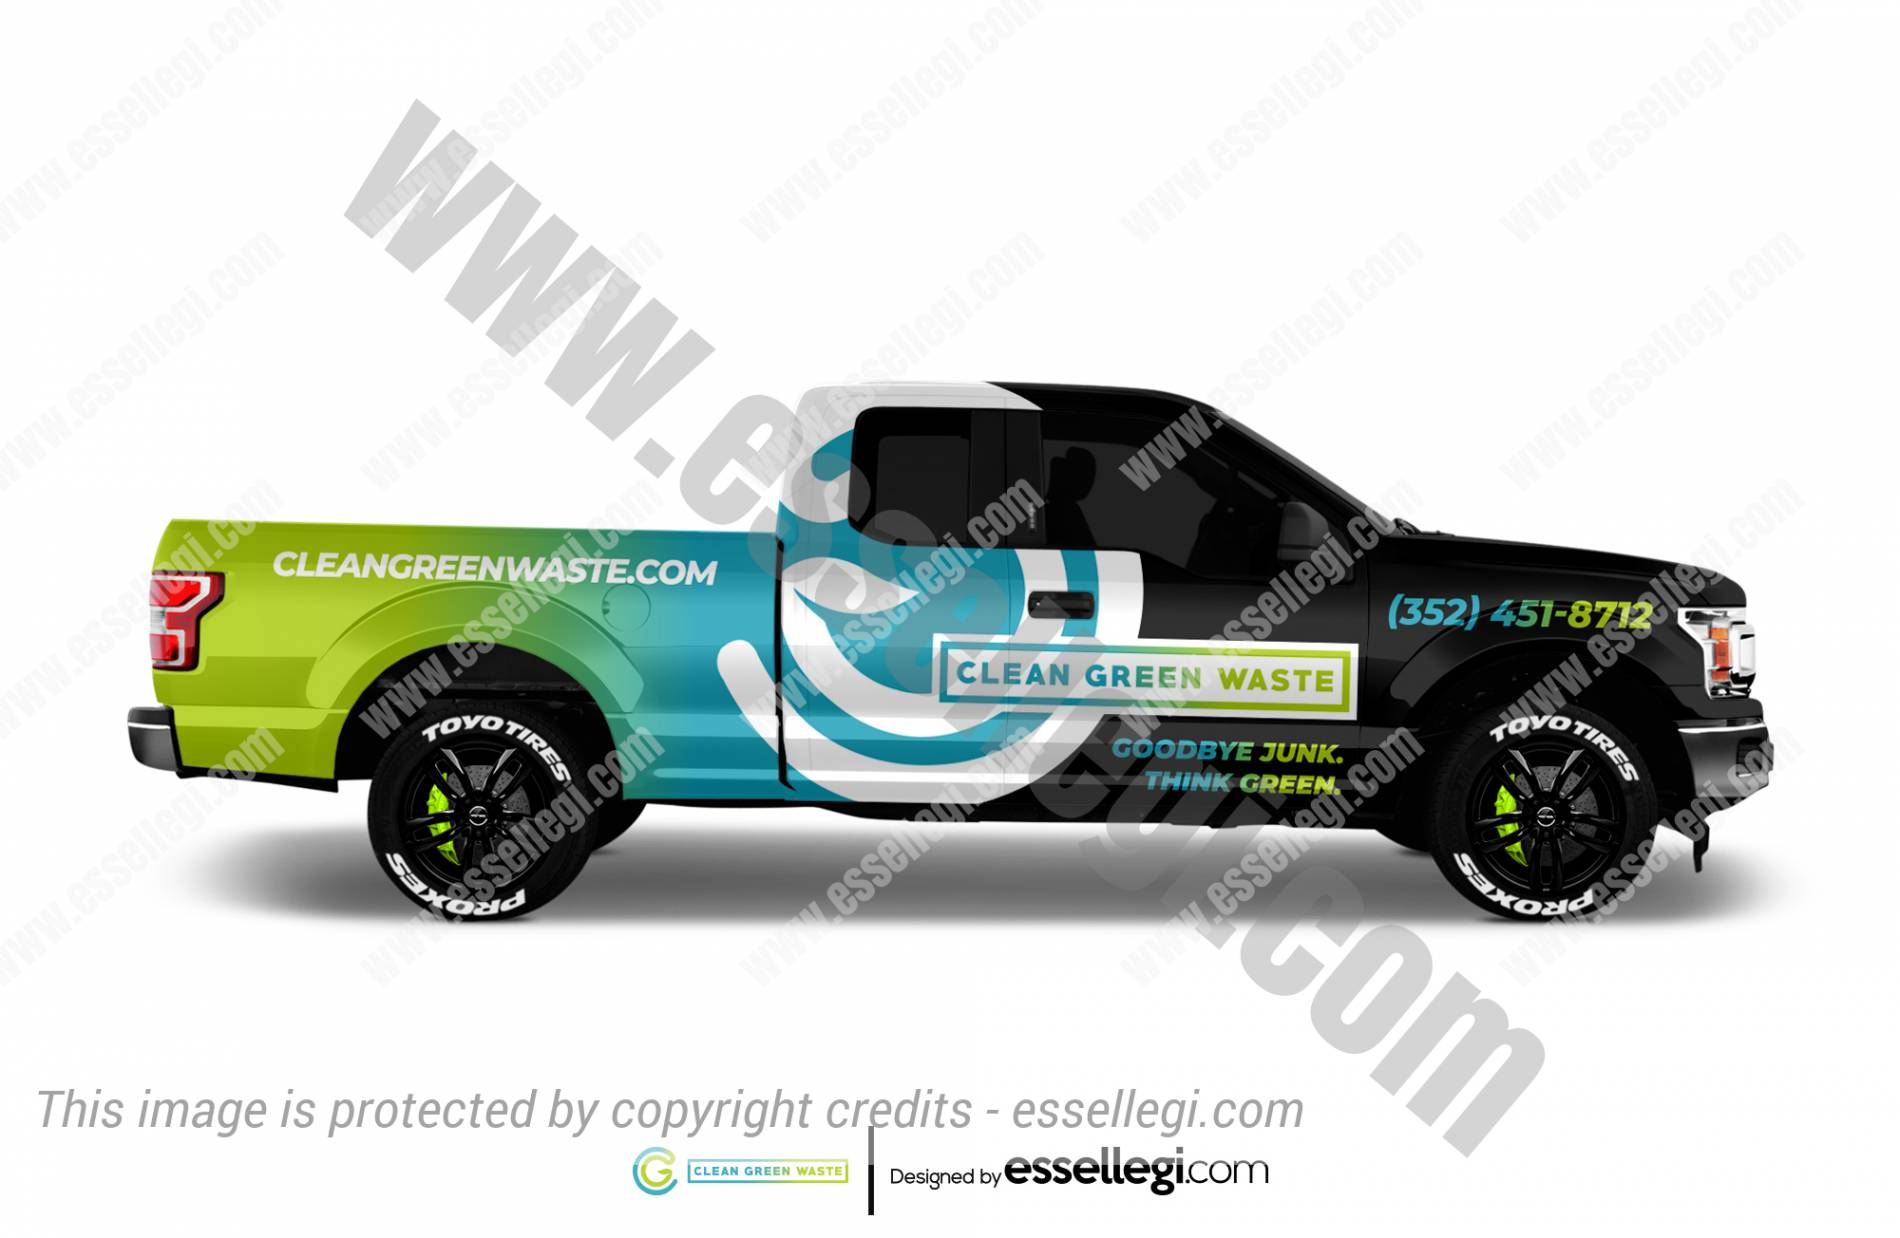 Ford F150 Wrap. Ford F150 | Truck Wrap Design by Essellegi. Ford Truck, Ford Trucks, Truck Wrap, Truck Wraps, Wrap Design, Vehicle Signage, Vehicle Wrap, Truck Signs, Vinyl Wrap, Truck Graphics, Vehicle Signs Vehicle Wraps, Vehicle Graphics, Truck Wrapping, Vehicle Wrapping Wrapped, Custom Wraps, Custom Graphics, Vinyl Wraps, Full Wrap Wrap Advertising, Commercial Wraps, Custom Design by Essellegi.